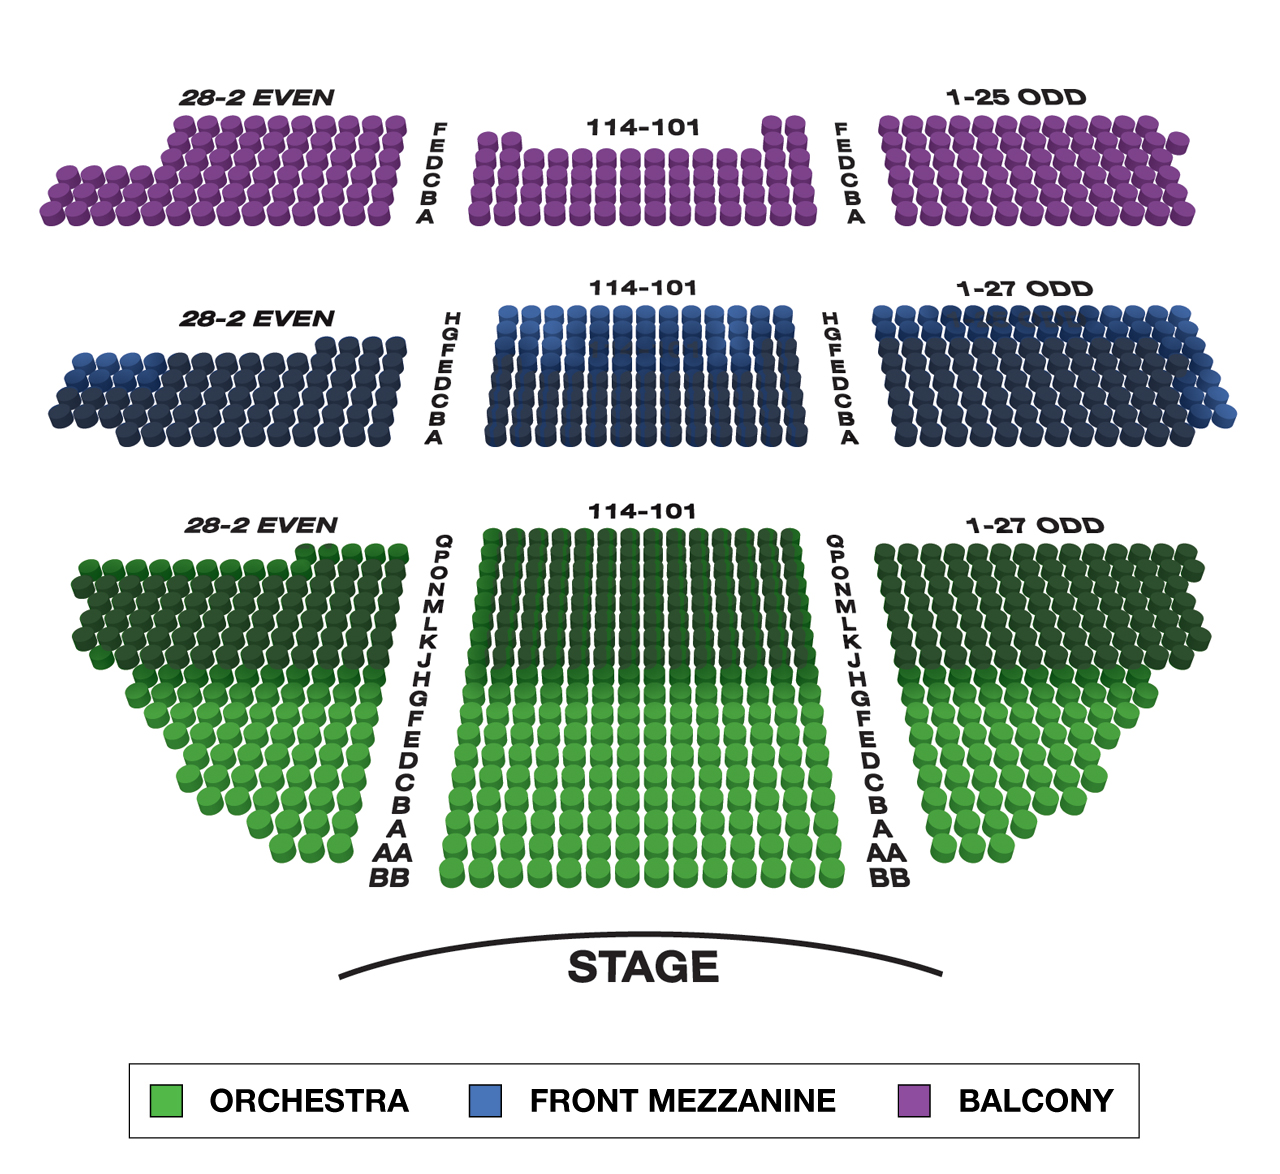 Belasco theatre large broadway seating charts